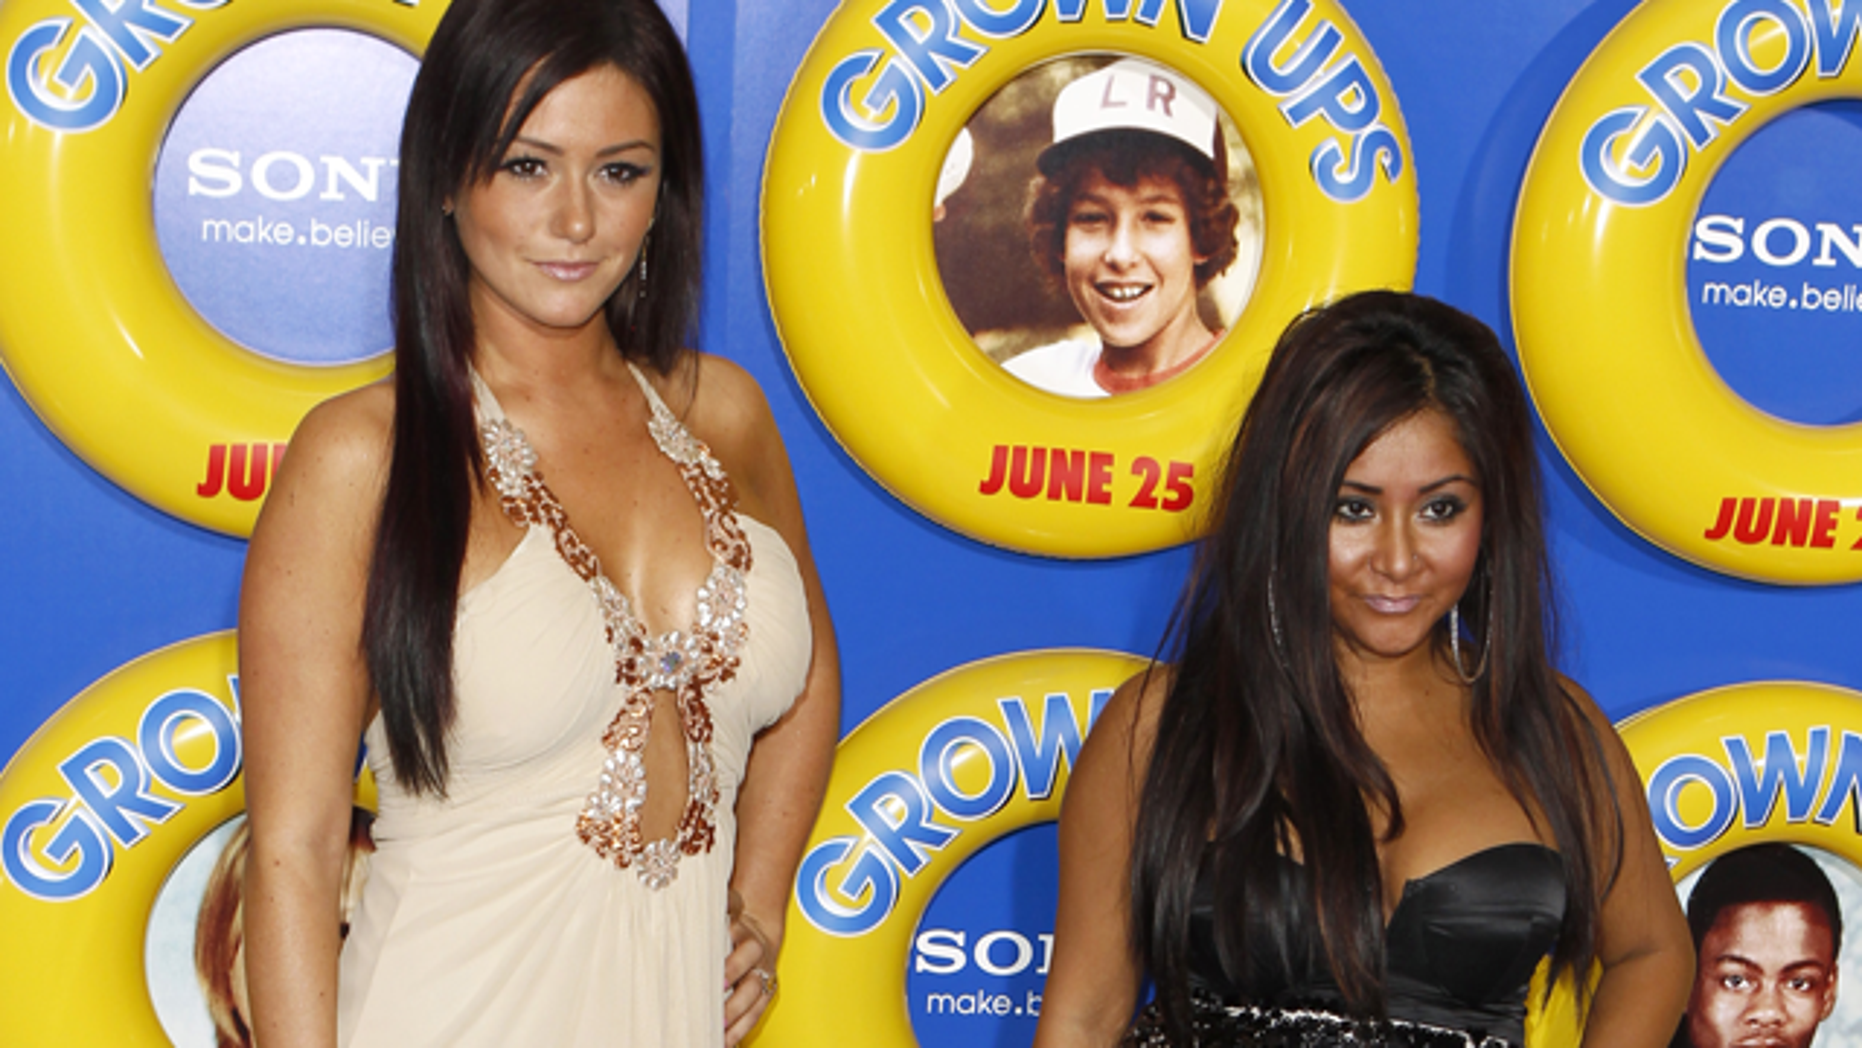 'Jersey Shore' stars JWoww and Snooki. (Reuters)